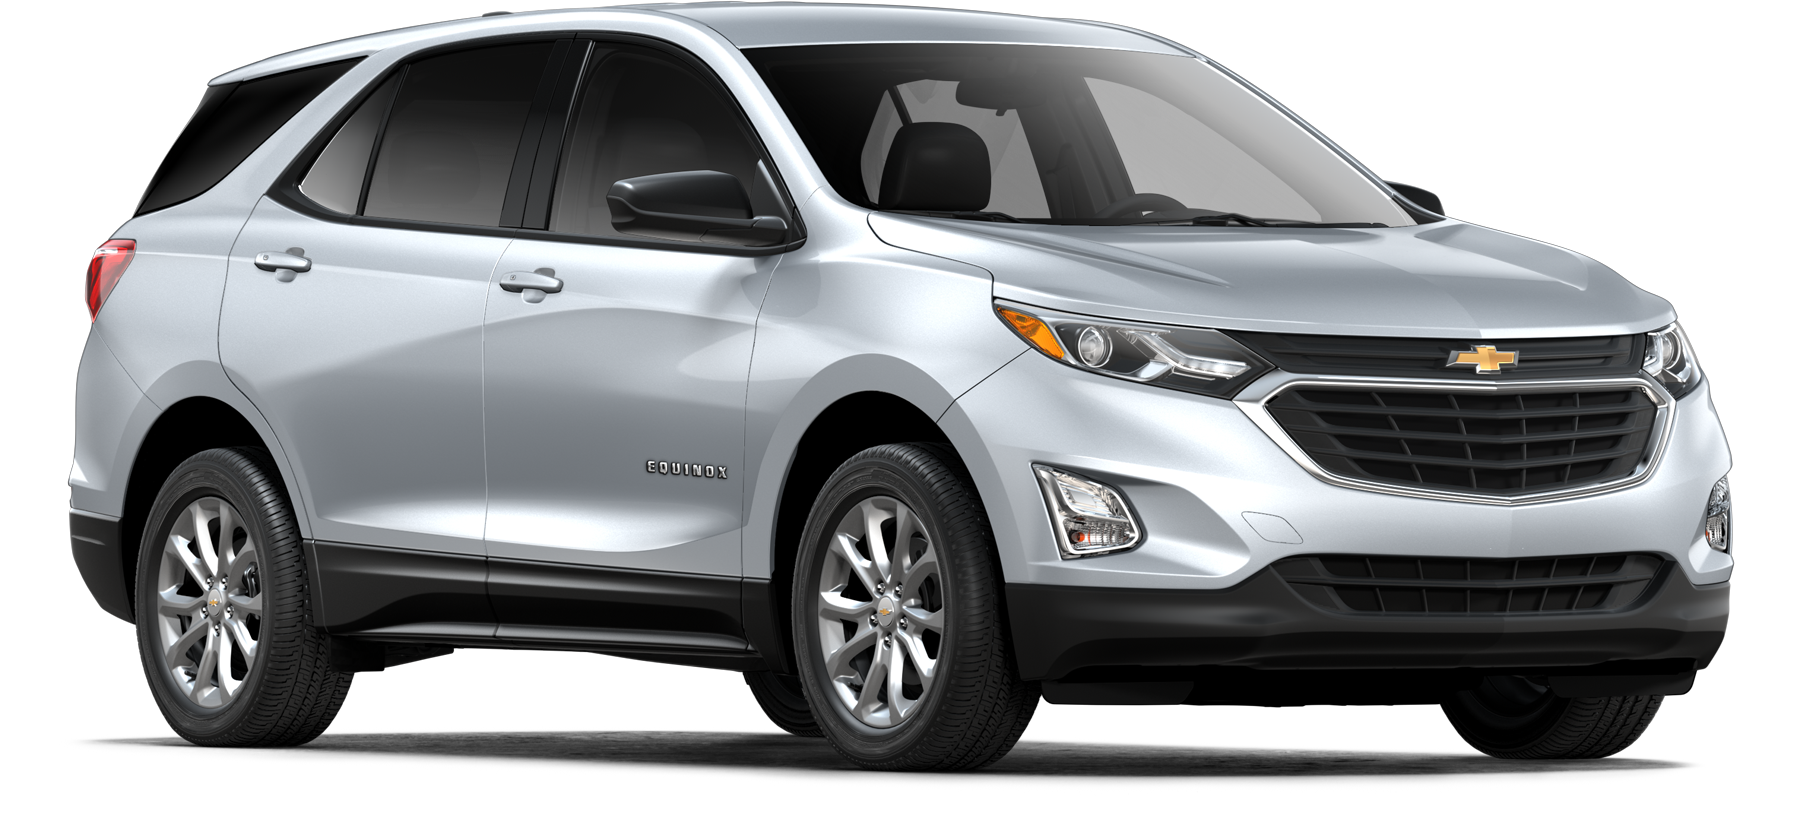 2019 Chevrolet Equinox Incentives, Specials & Offers in